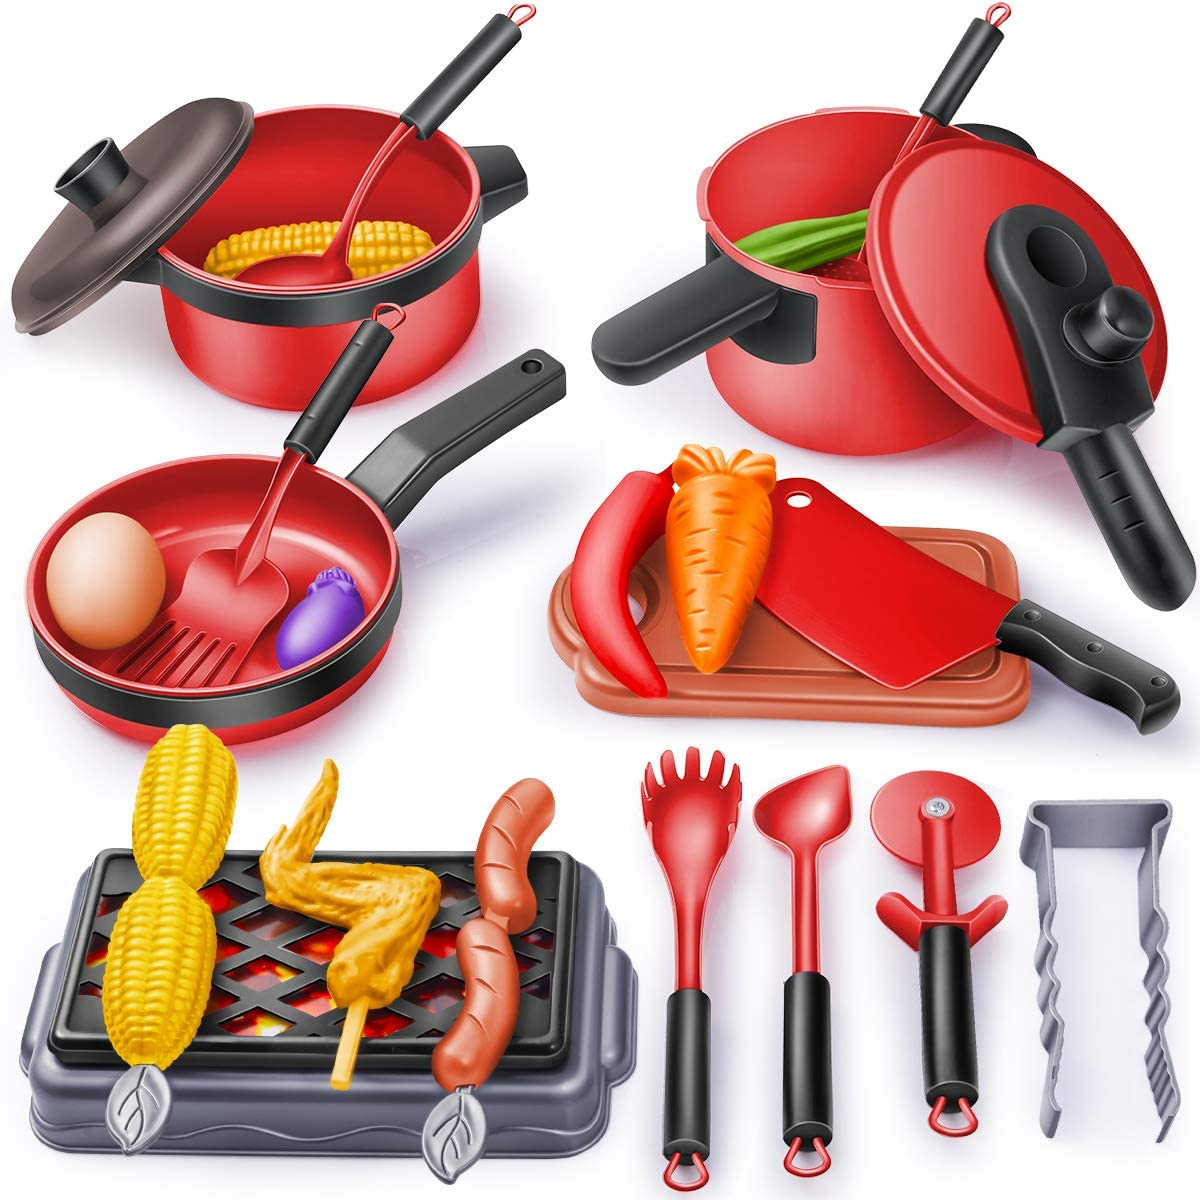 Geyiie Kids Kitchen Pretend Play Toys, Barbecue Toys for Kids, 24PCS Play Kitchen Accessories, Play Food BBQ Grill Pots and Pans Playset, Gift for Toddlers Kids Girls Boys